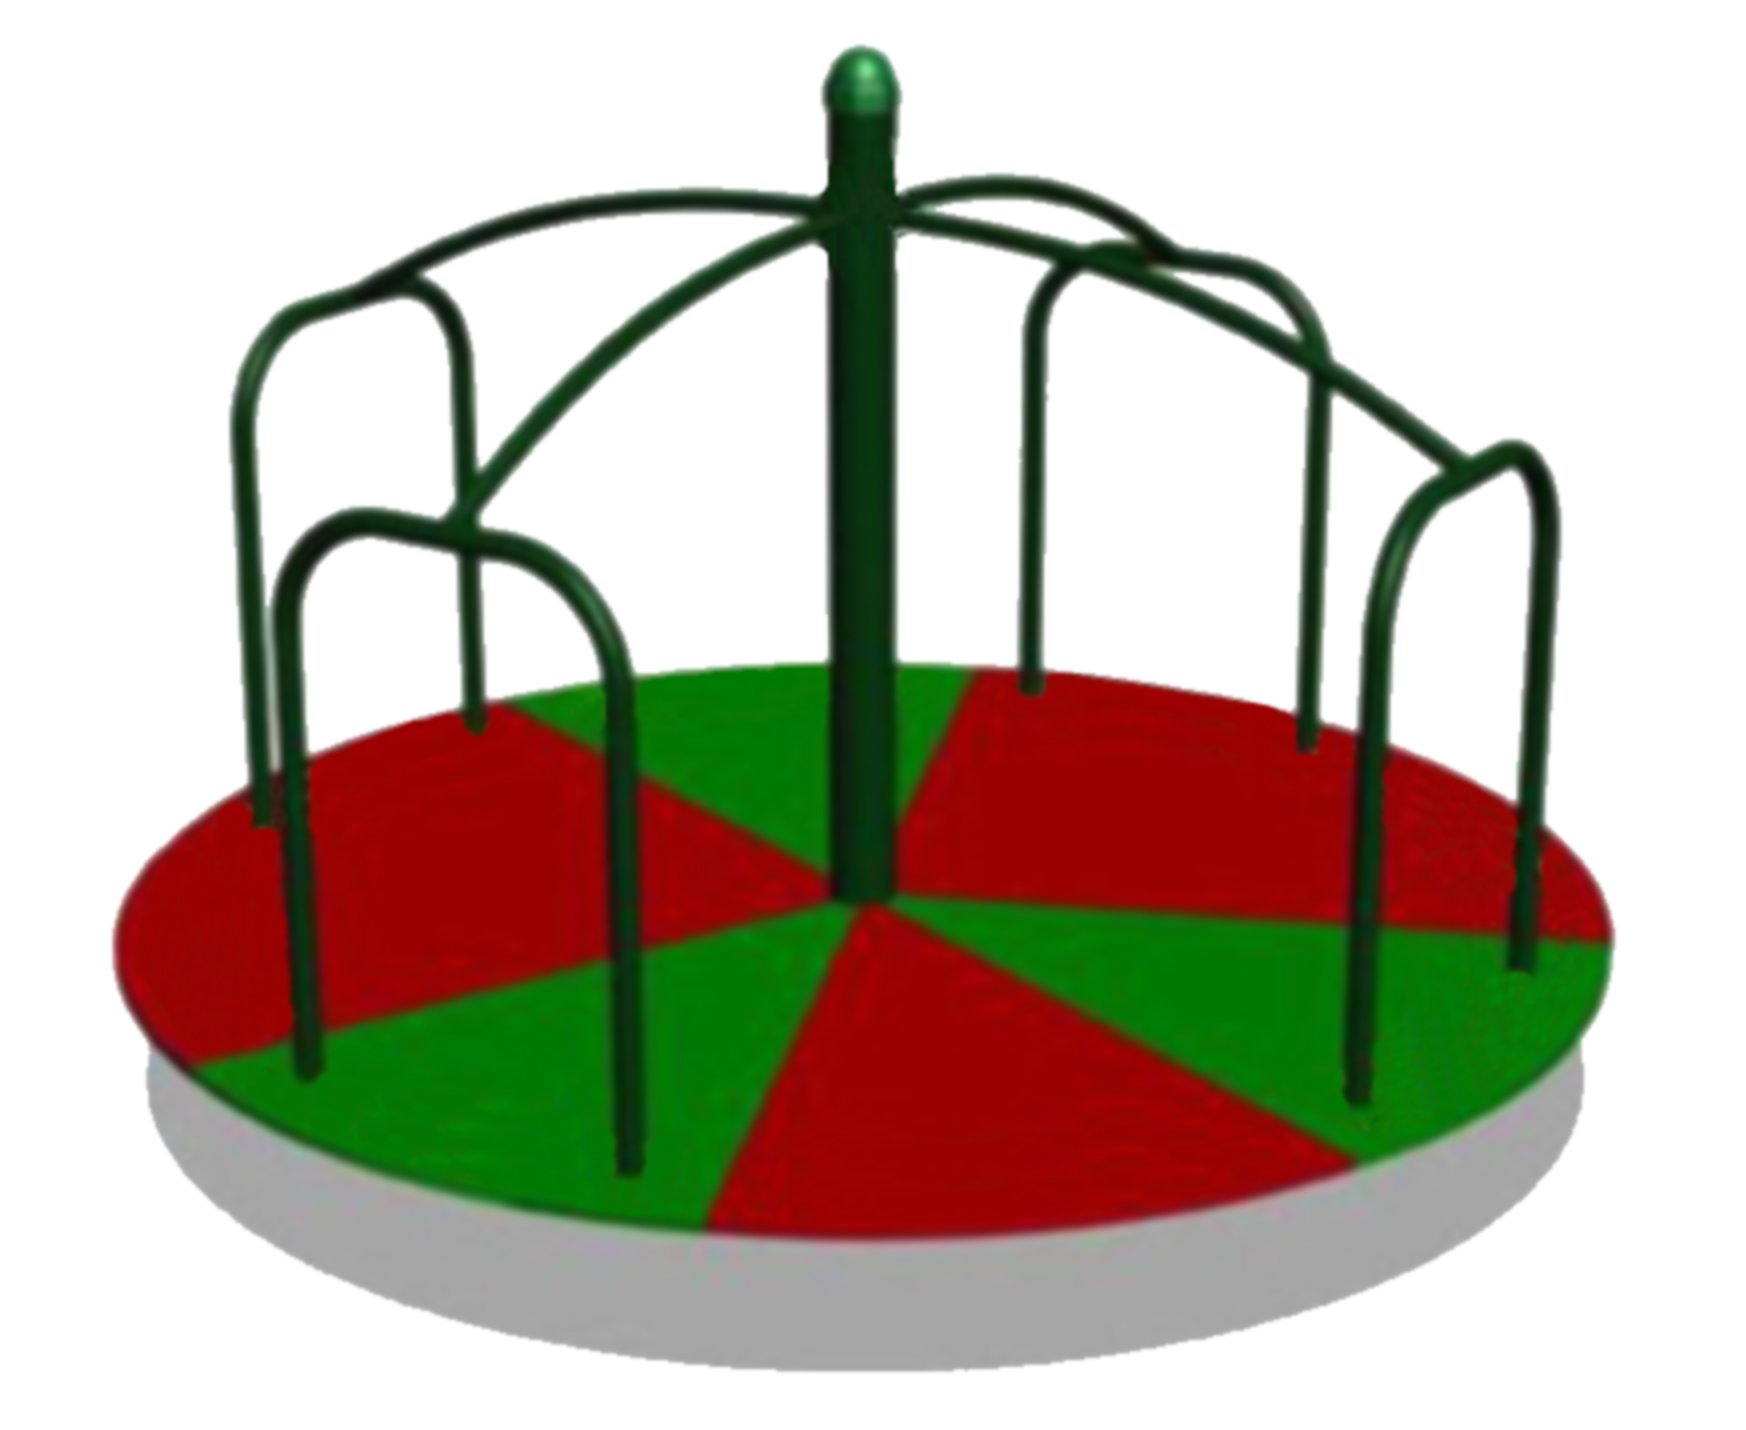 Images Of Playground Clipart - ClipArt Best